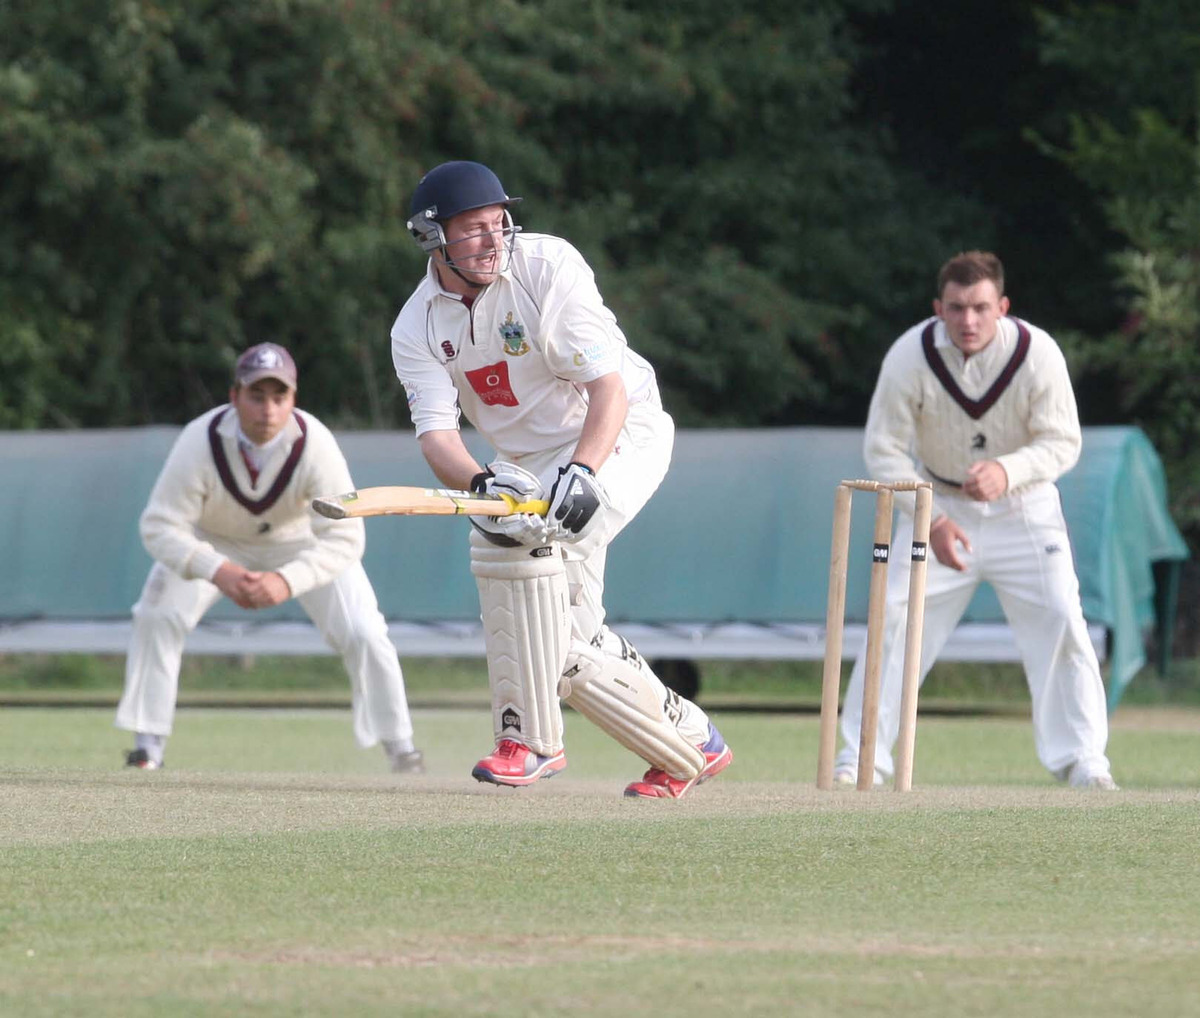 Ian Demain's unbeaten 34 saw Didcot to the Division 4 title with victory over Witney Mills